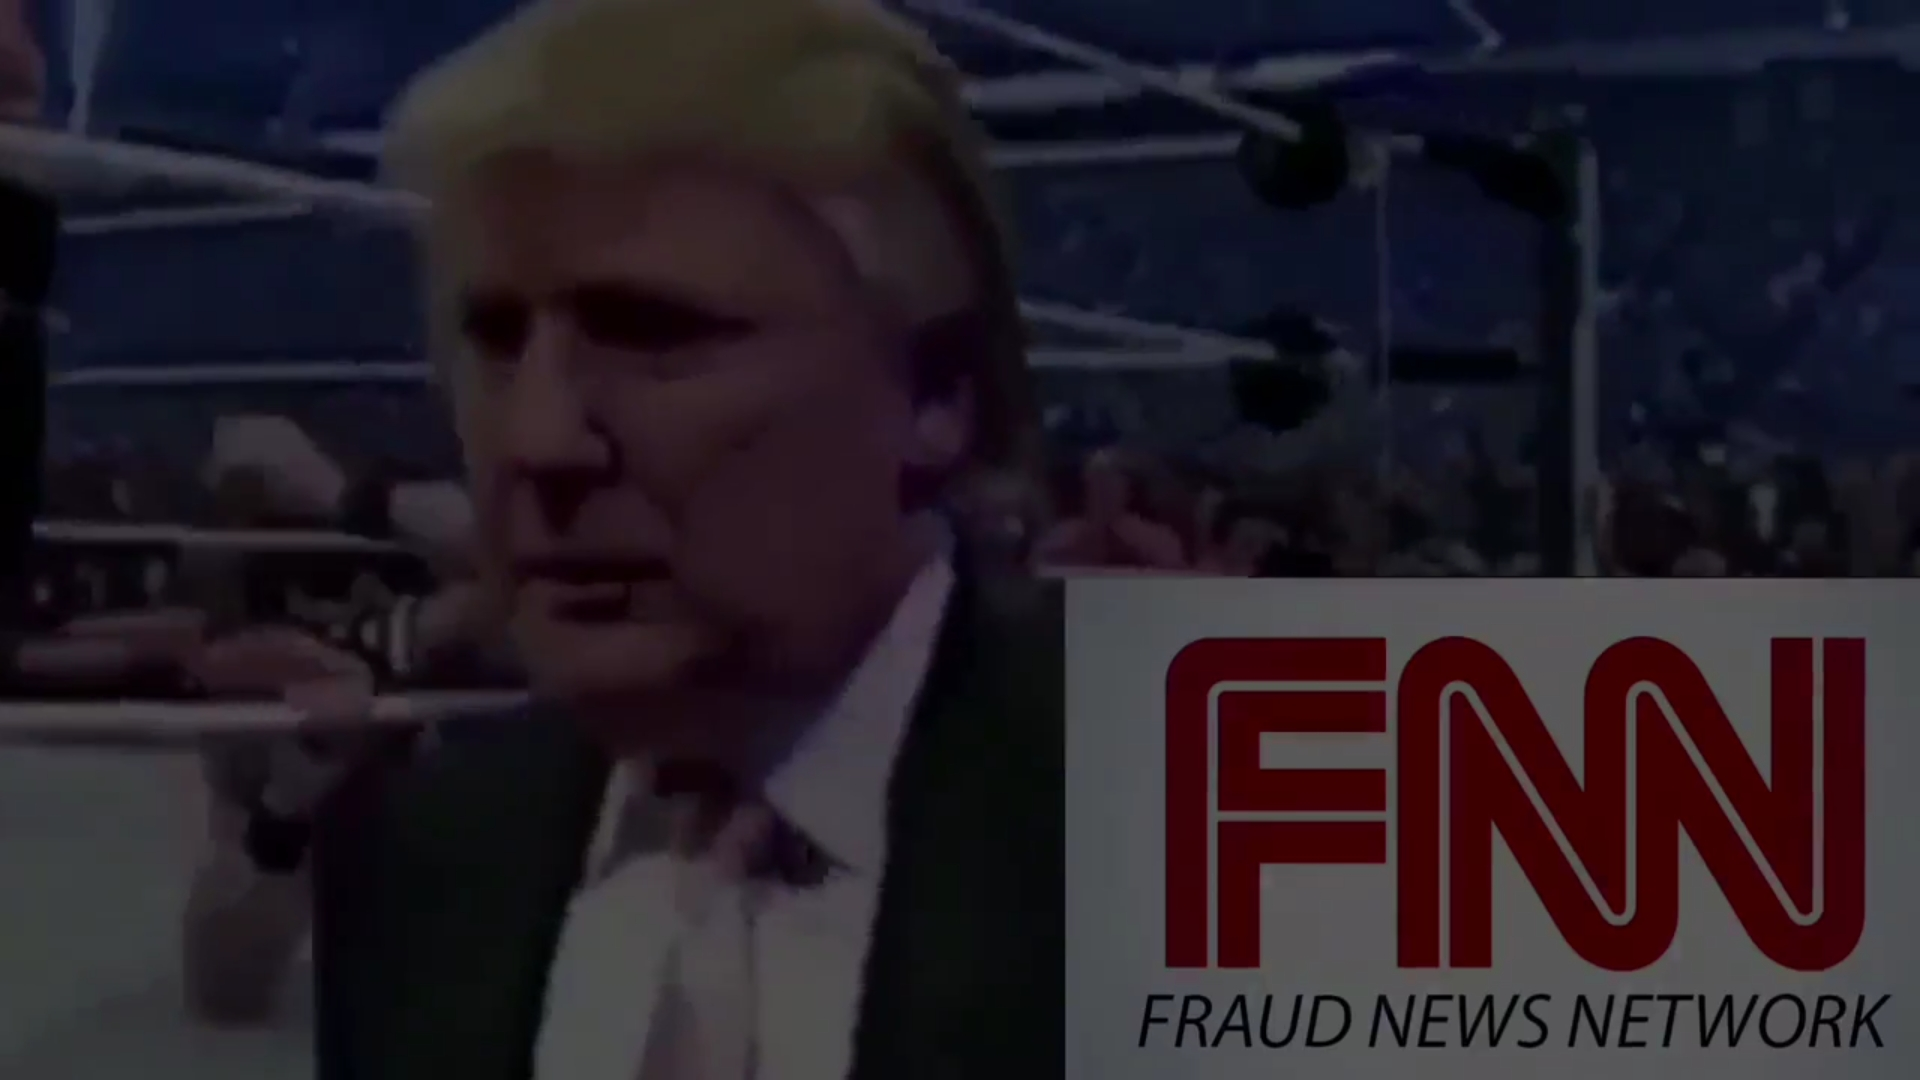 Trump Posts Violent Video of Him Beating Up CNN Logo